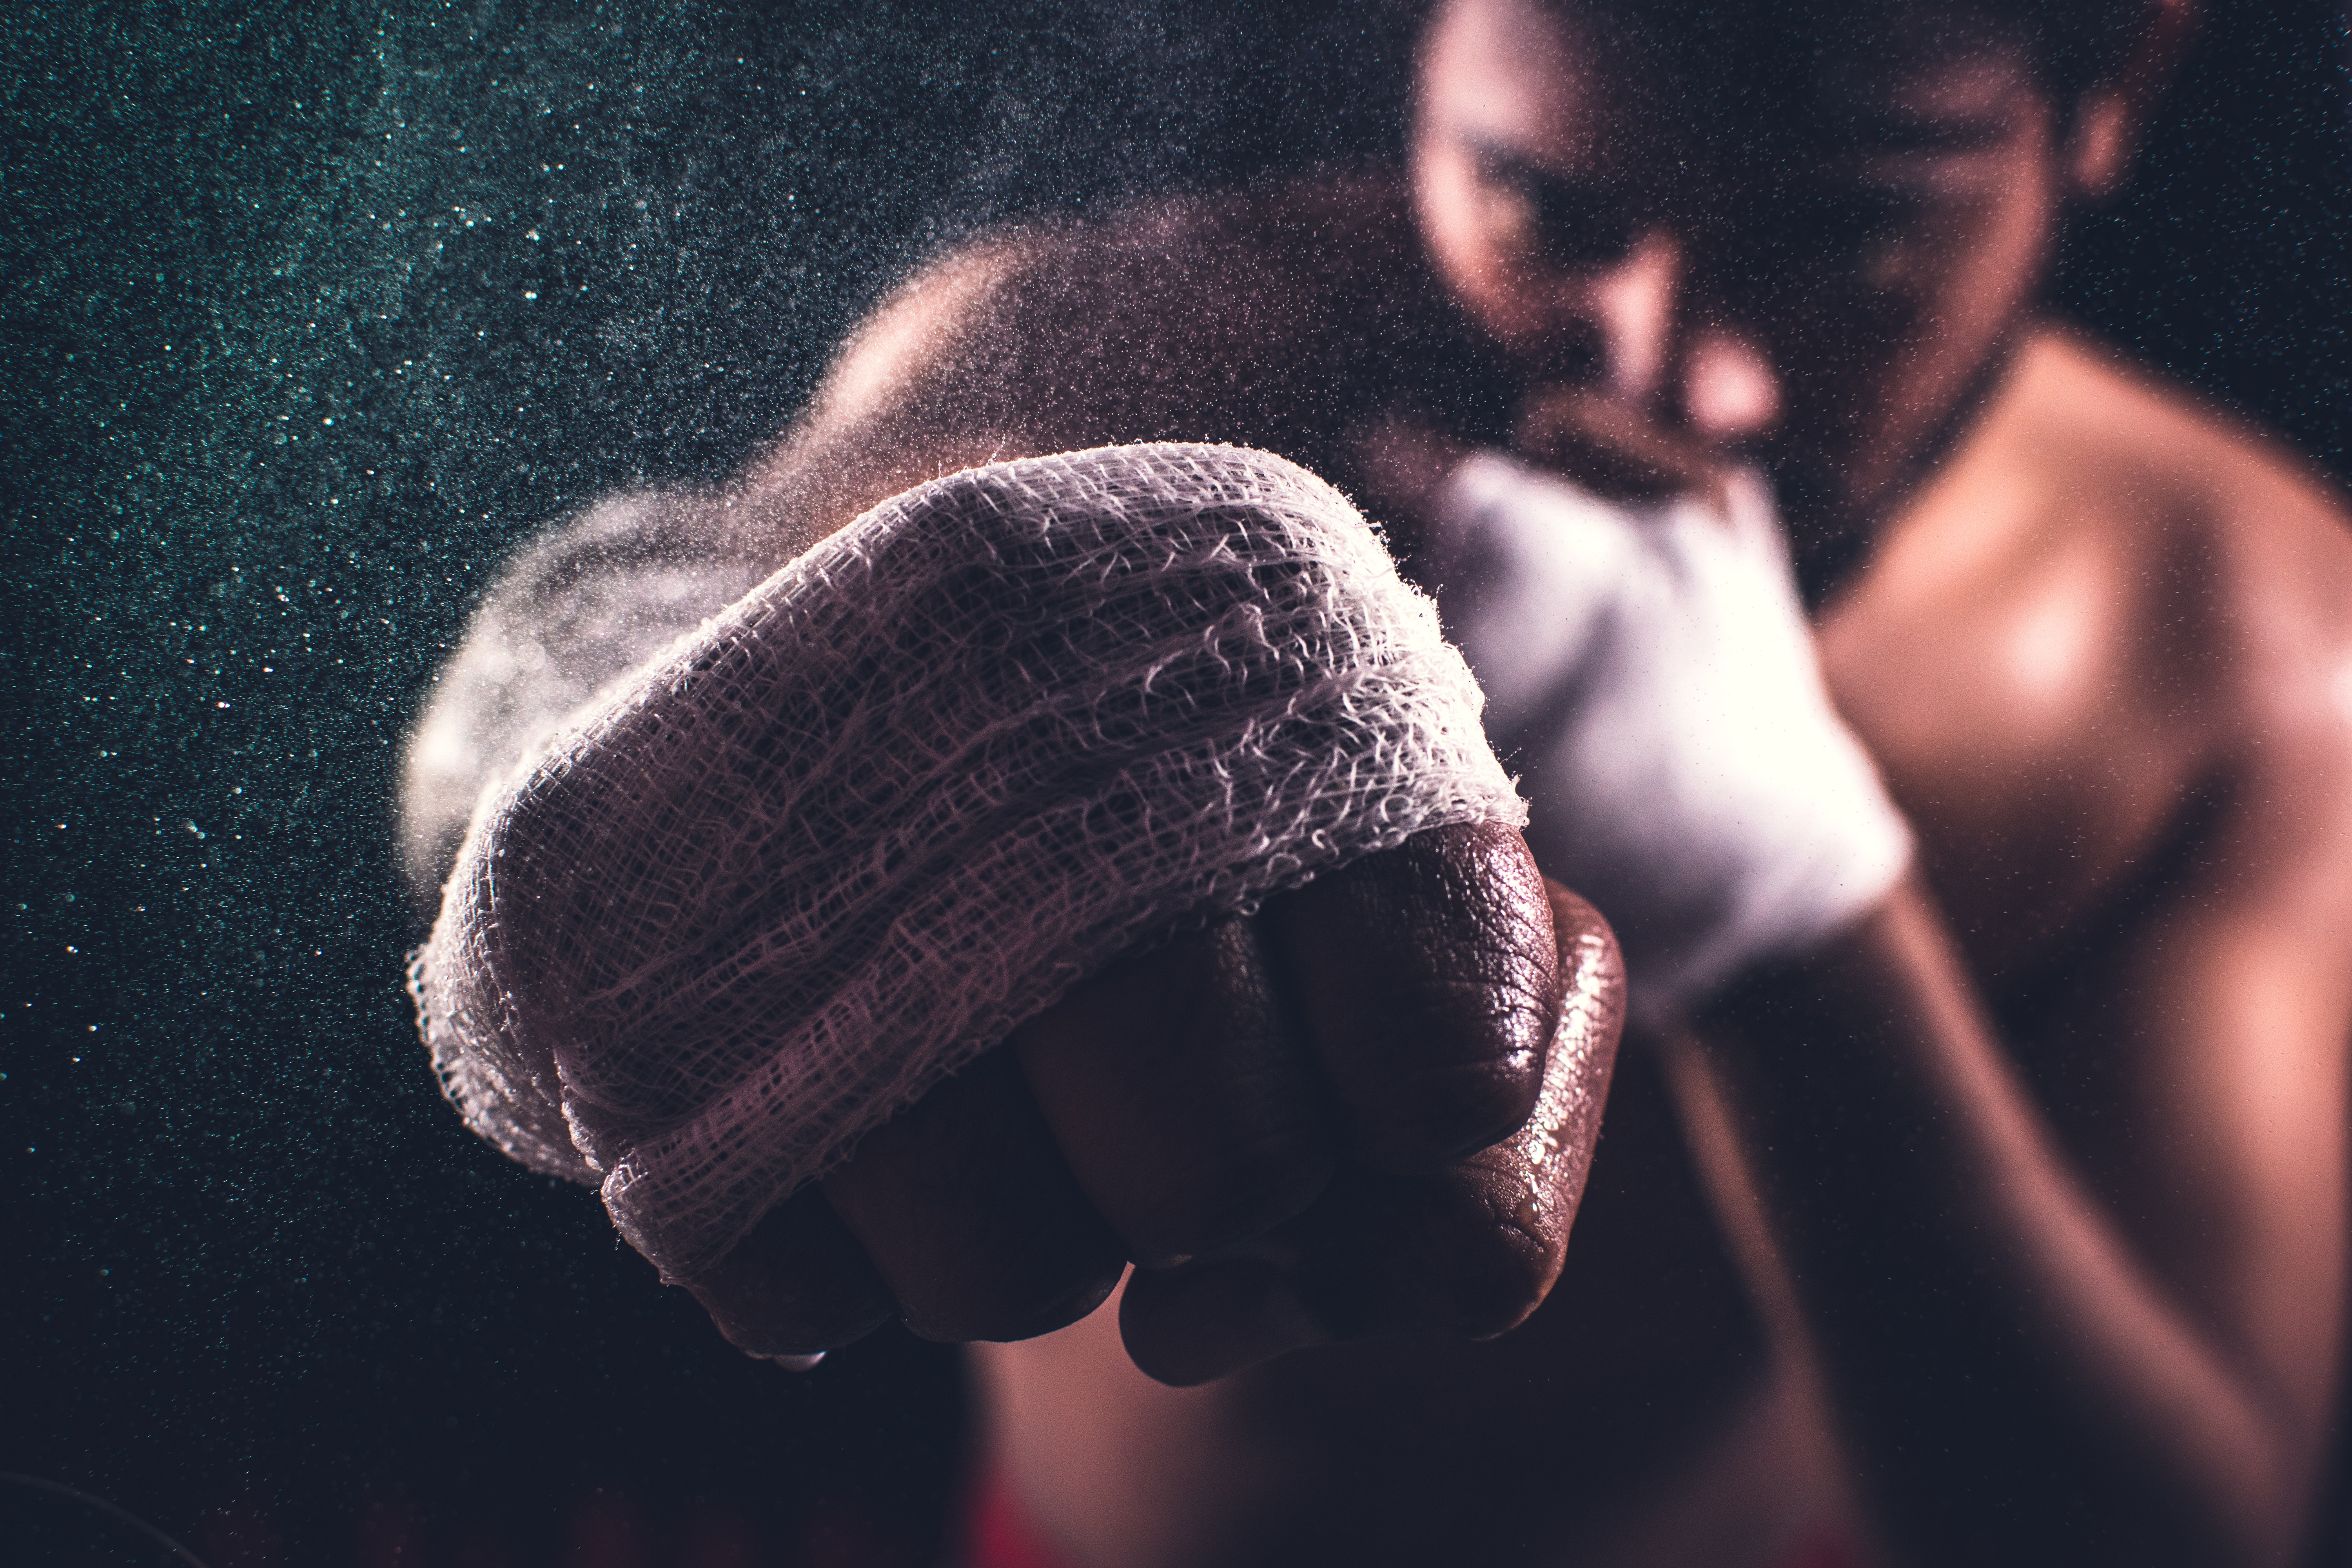 A boxer fighting after being tested for COVID-19